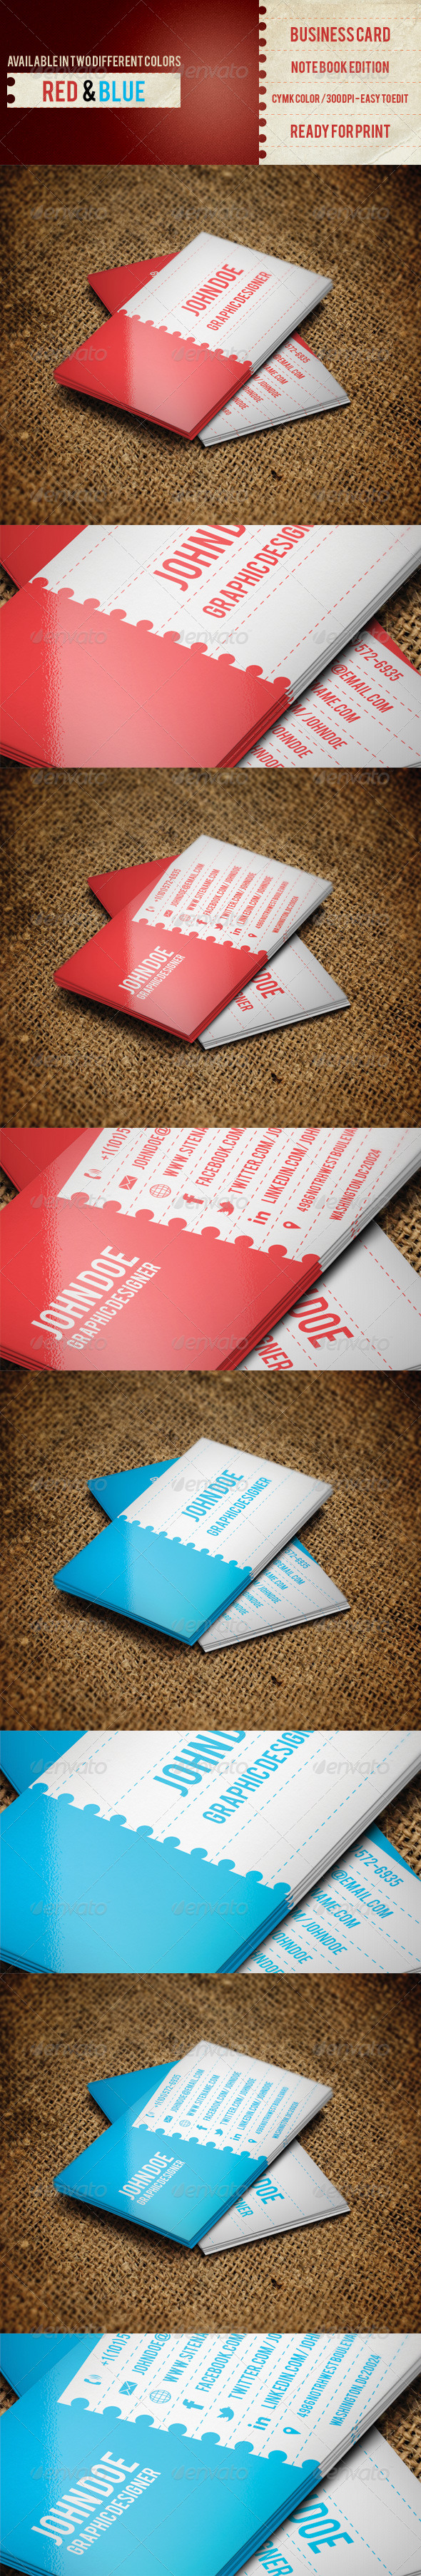 GraphicRiver Business Card NoteBook Edition 4737968